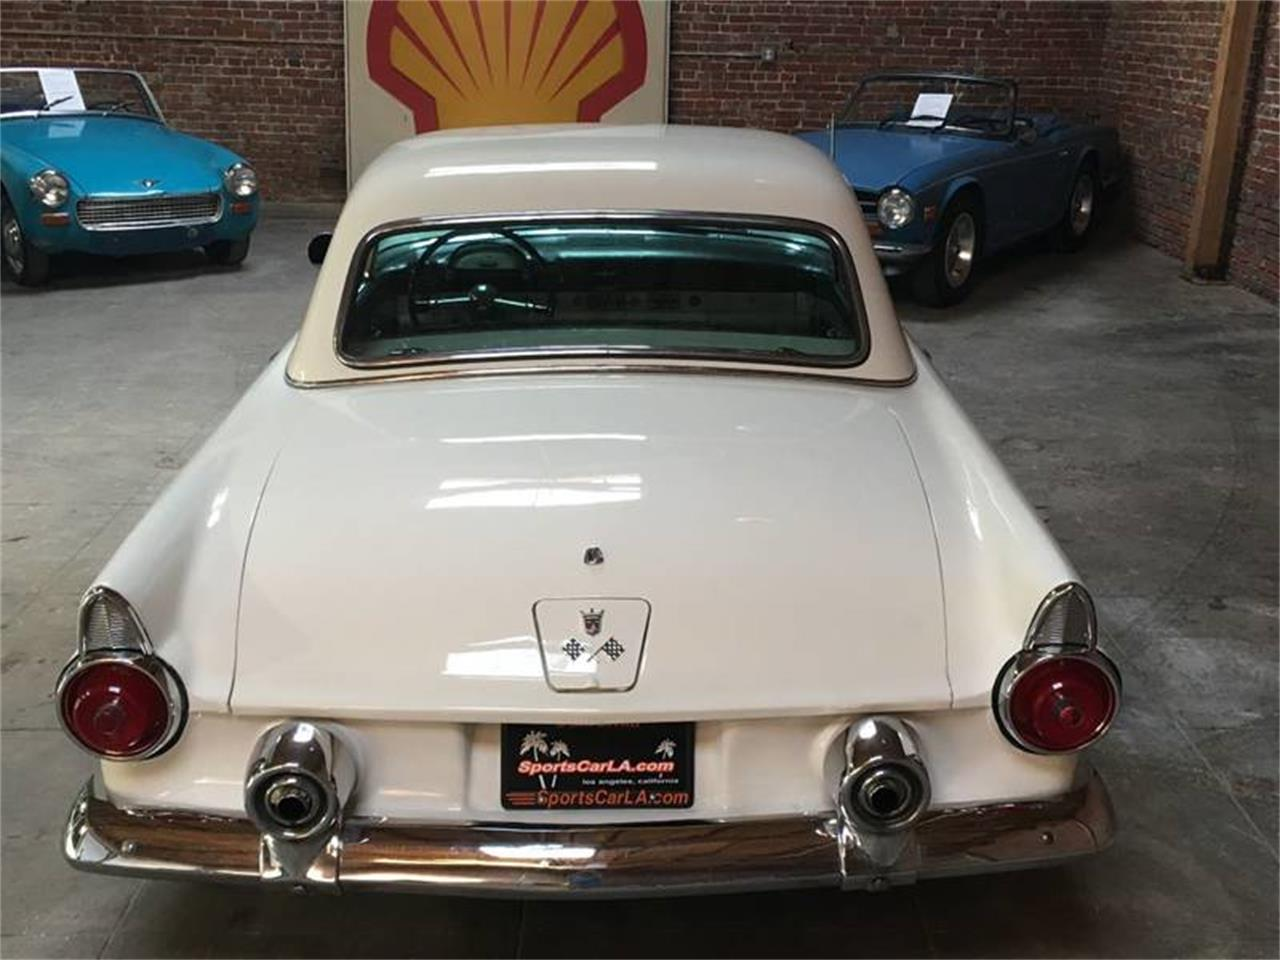 Large Picture of Classic 1955 Thunderbird - $23,750.00 Offered by Sports Car LA - OUKU